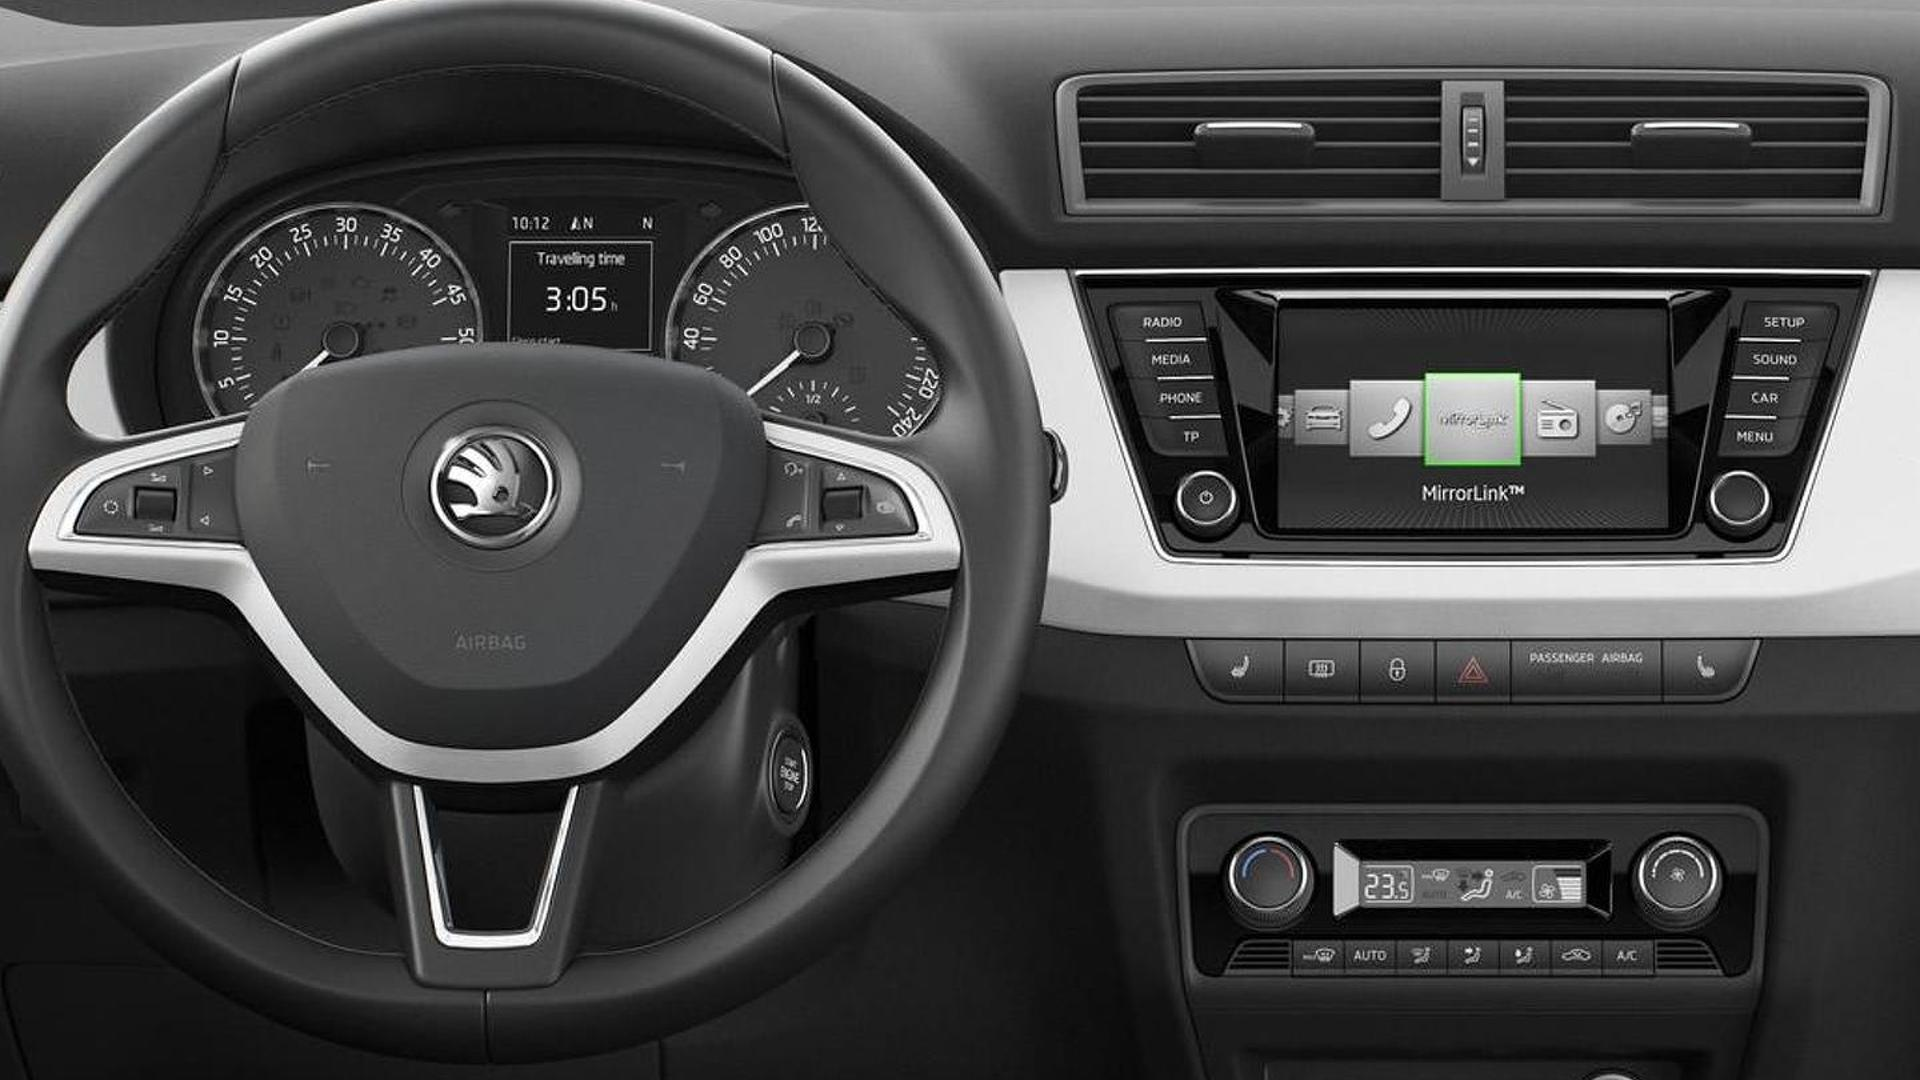 2015 Skoda Fabia dashboard revealed